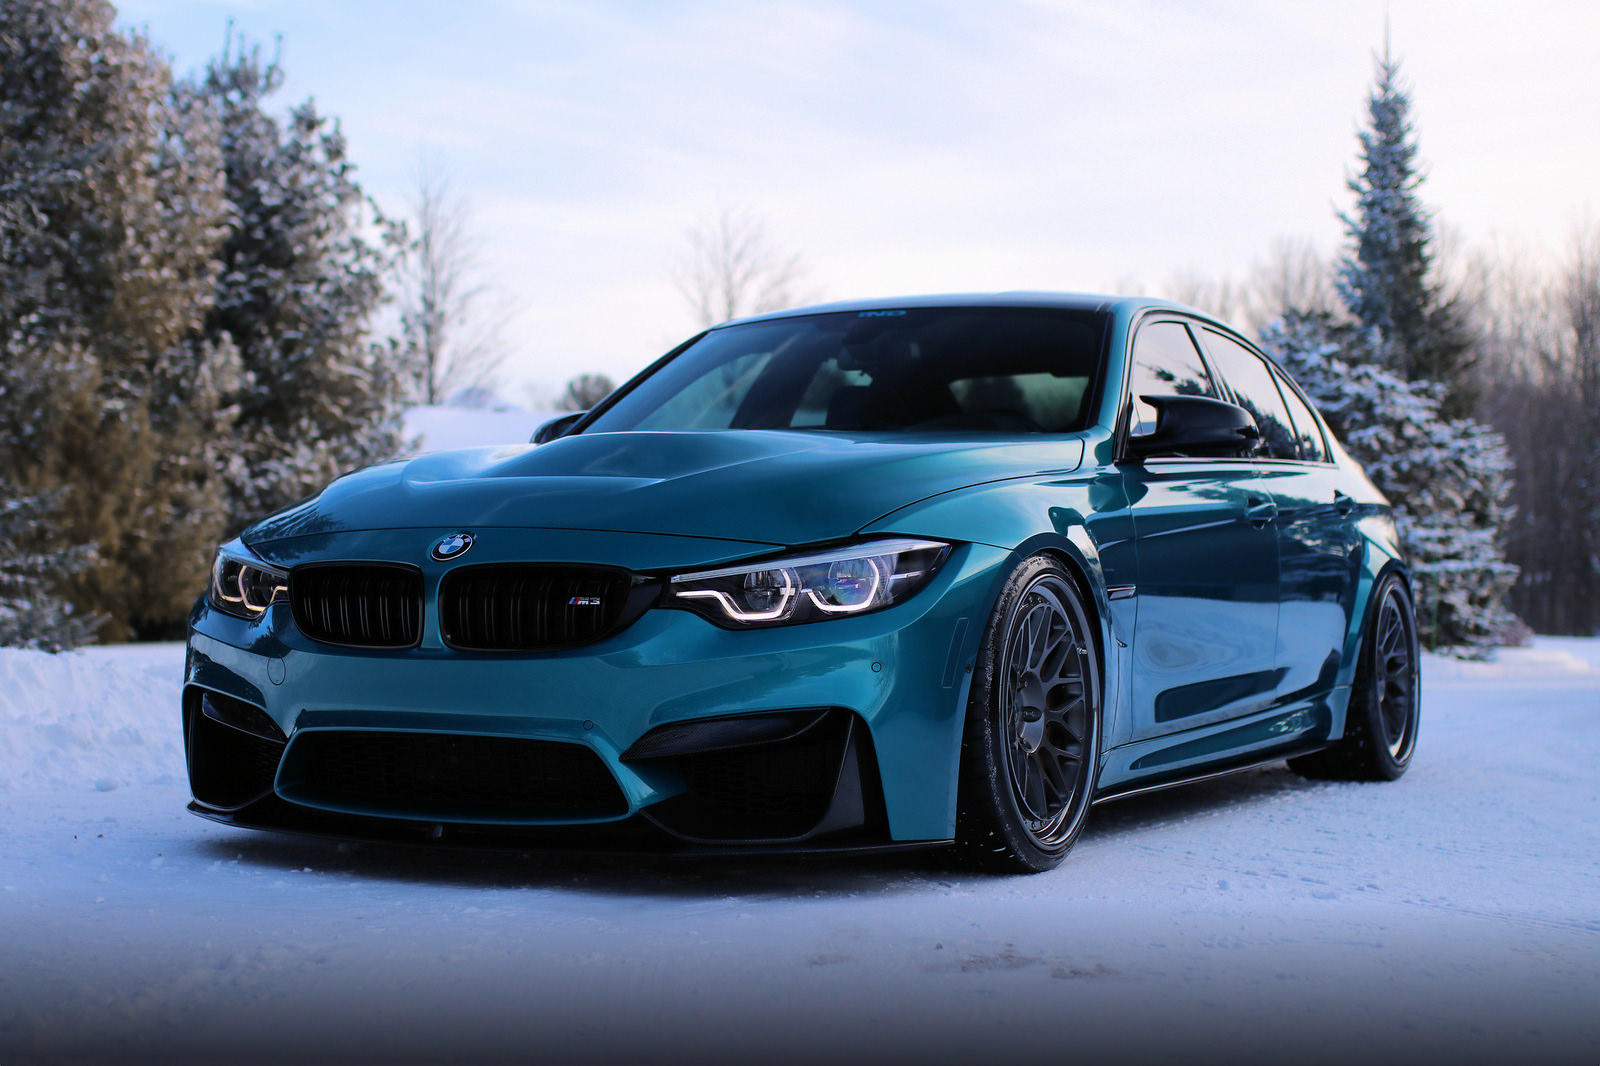 BMW M3 in nuanta Atlantis Blue - BMW M3 in nuanta Atlantis Blue